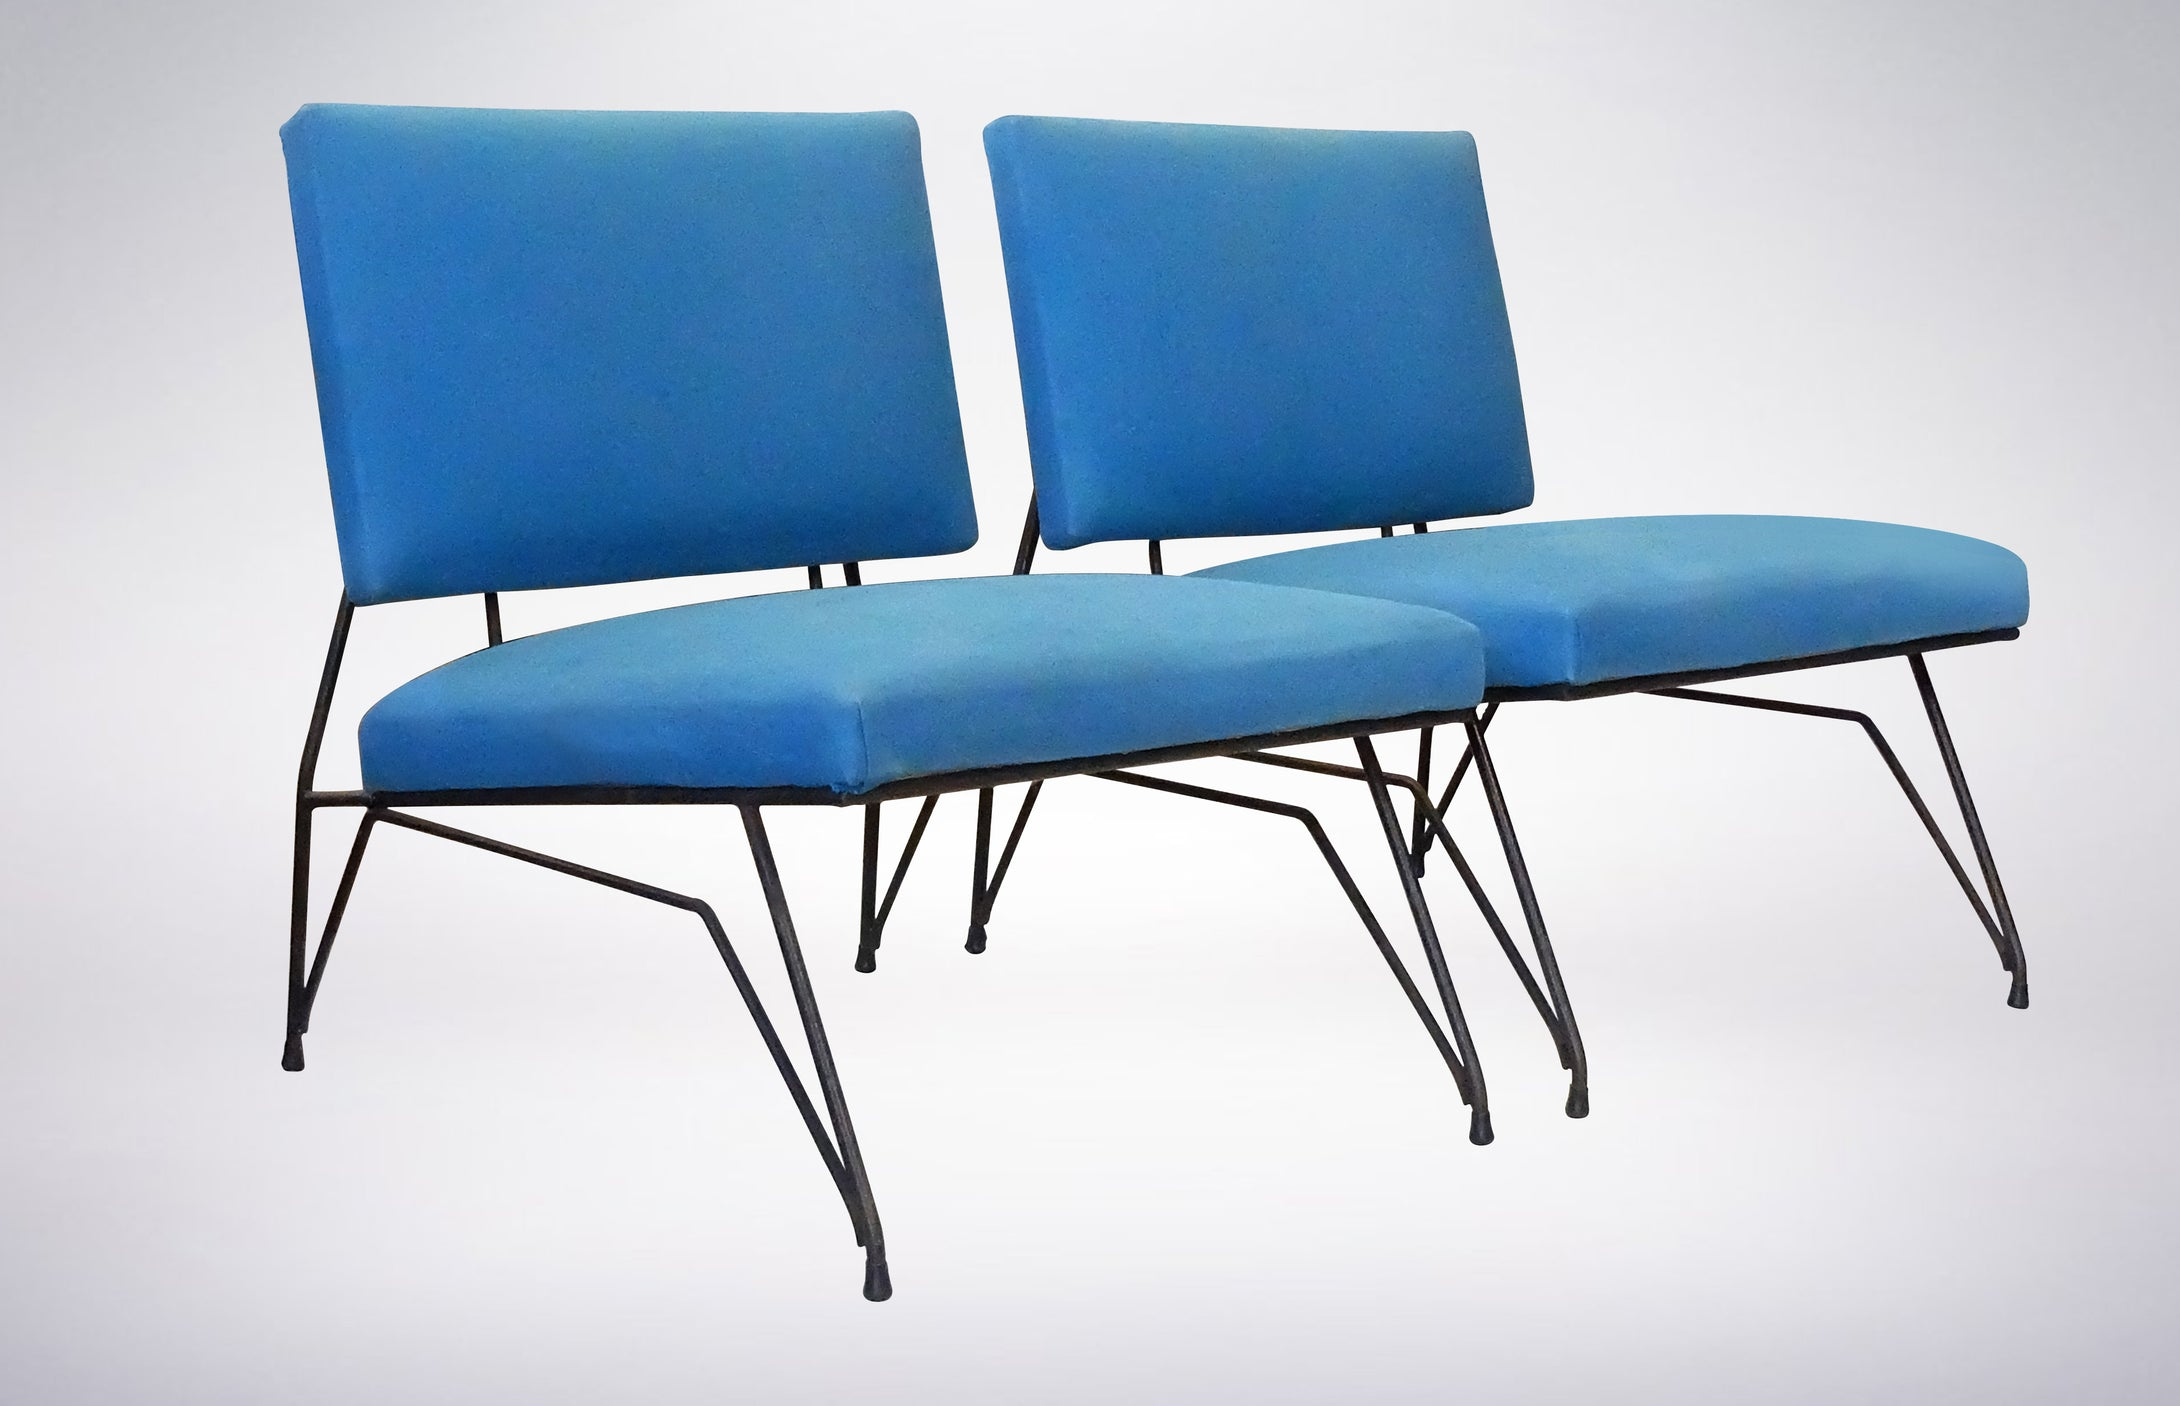 Elegant Pair Of Modernist Armchairs, In Lush Blue Upholstery